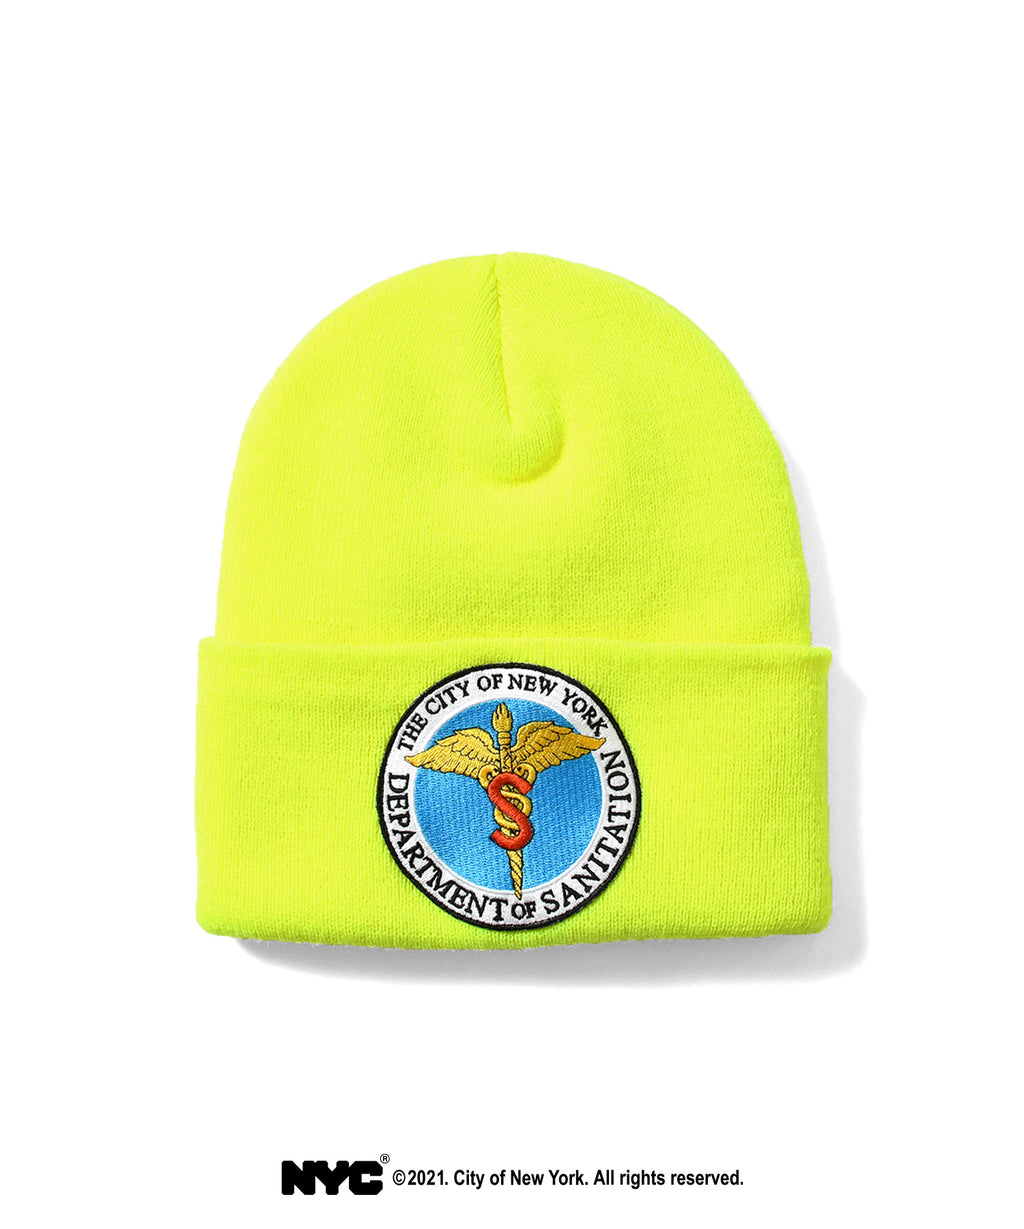 LFYT X DSNY COMMUNITY SERVICES LONG BEANIE LS211404 SAFETY GREEN